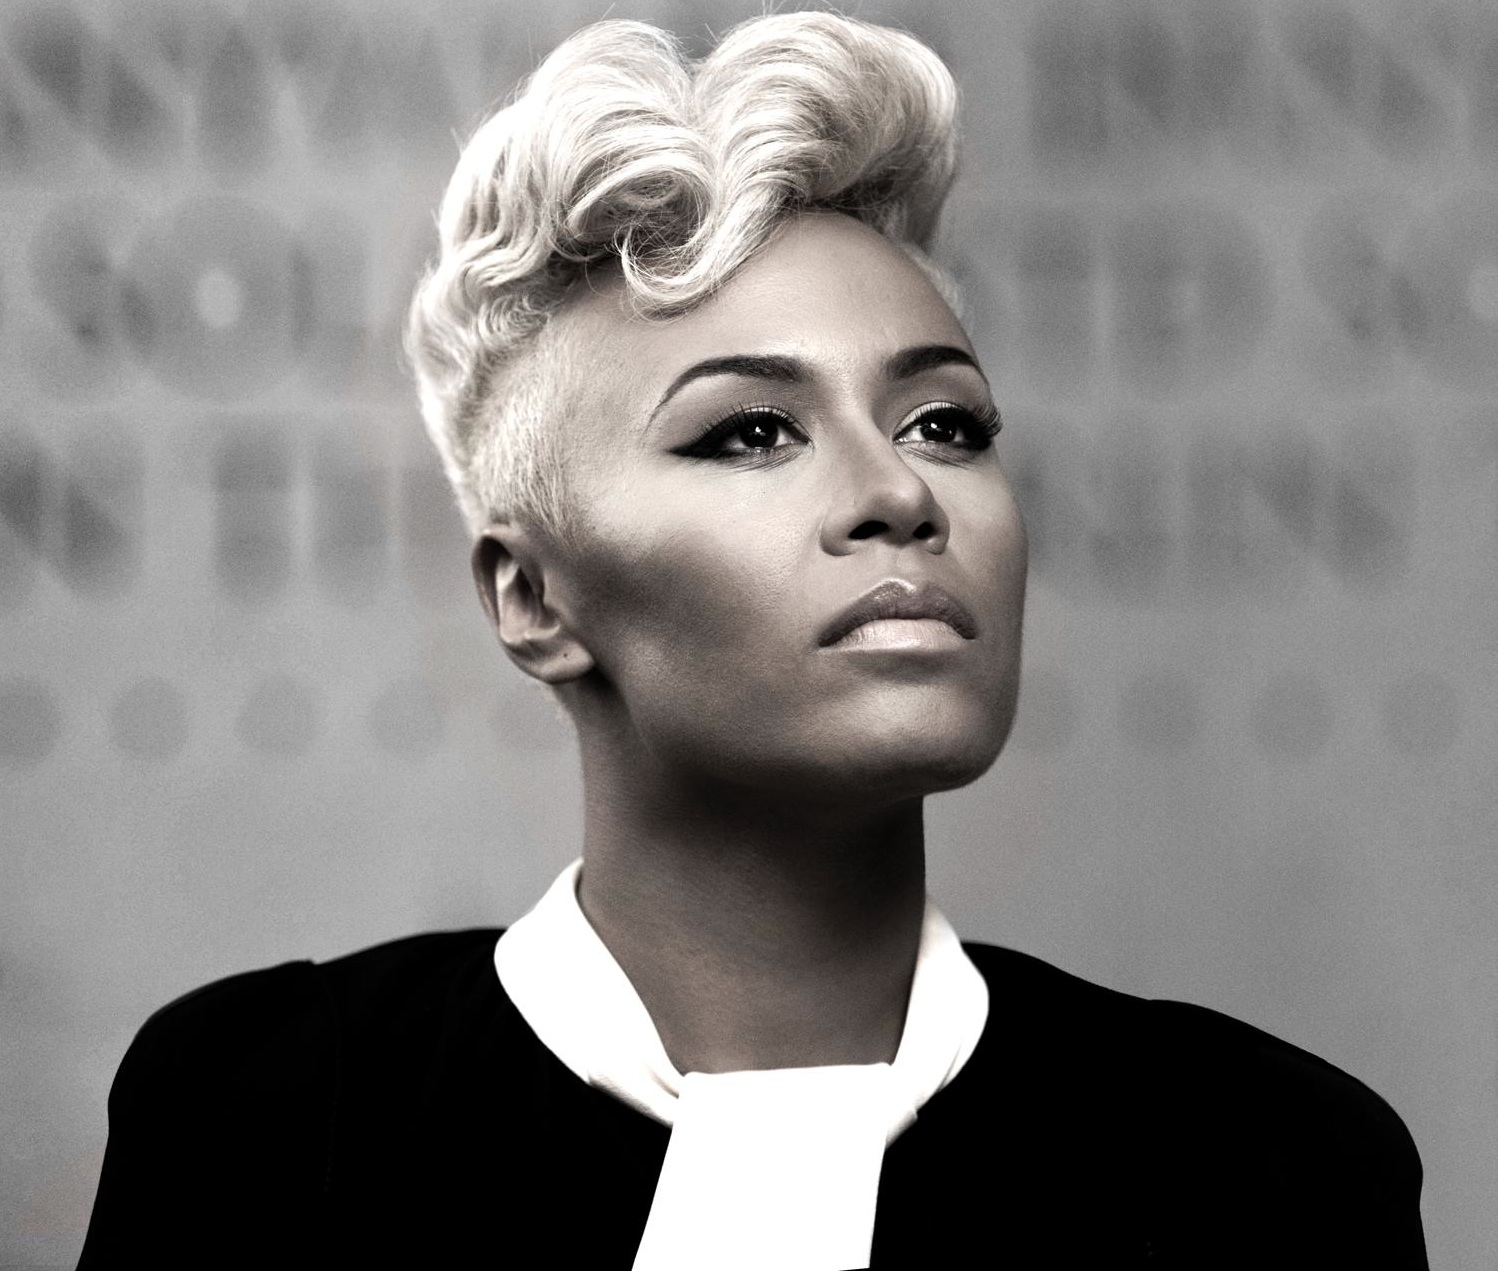 Emeli Sande thatgrapejuice Watch: Emeli Sande Performs Clown Live At BRIT Awards 2013